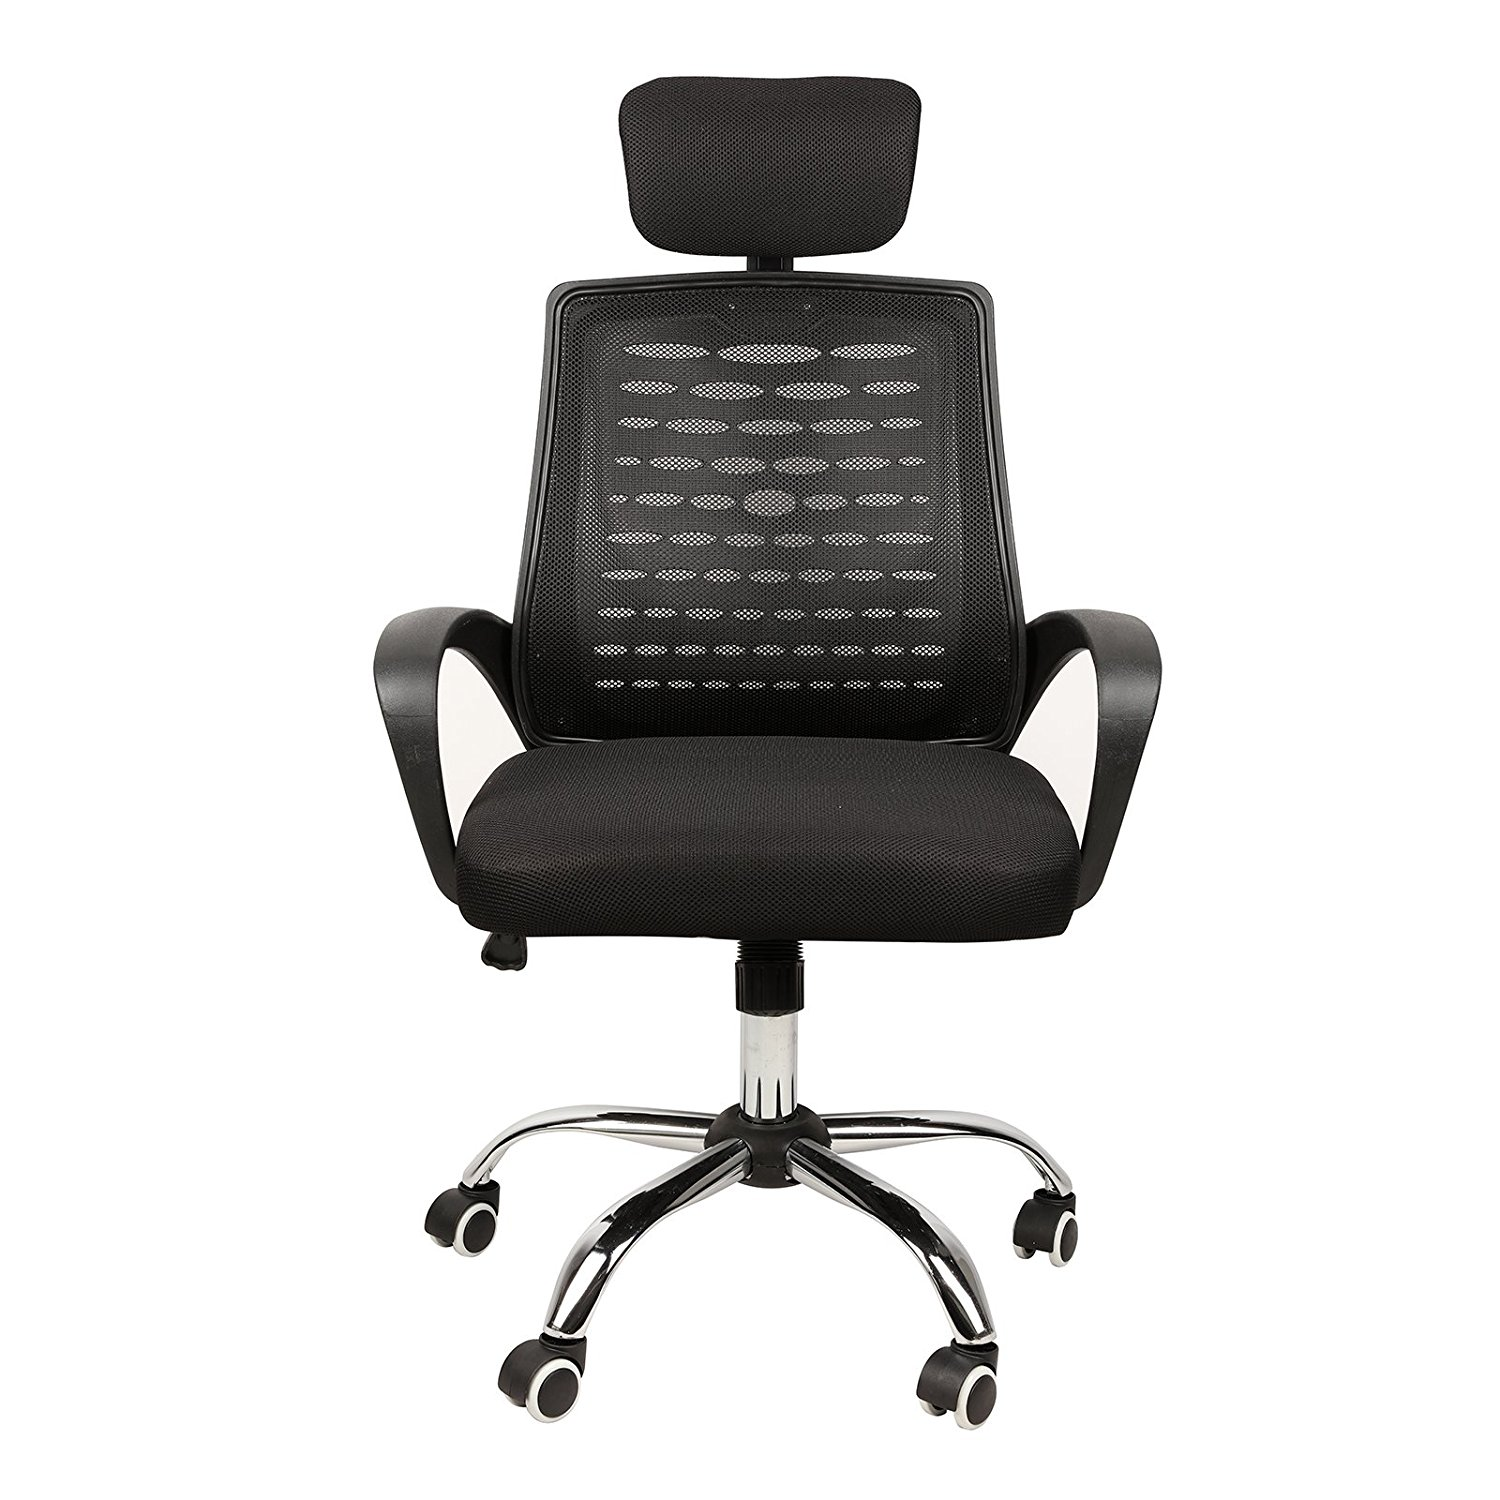 Delicieux Modern Home Computer Office Desk Chair With Armrest And Headrest Black